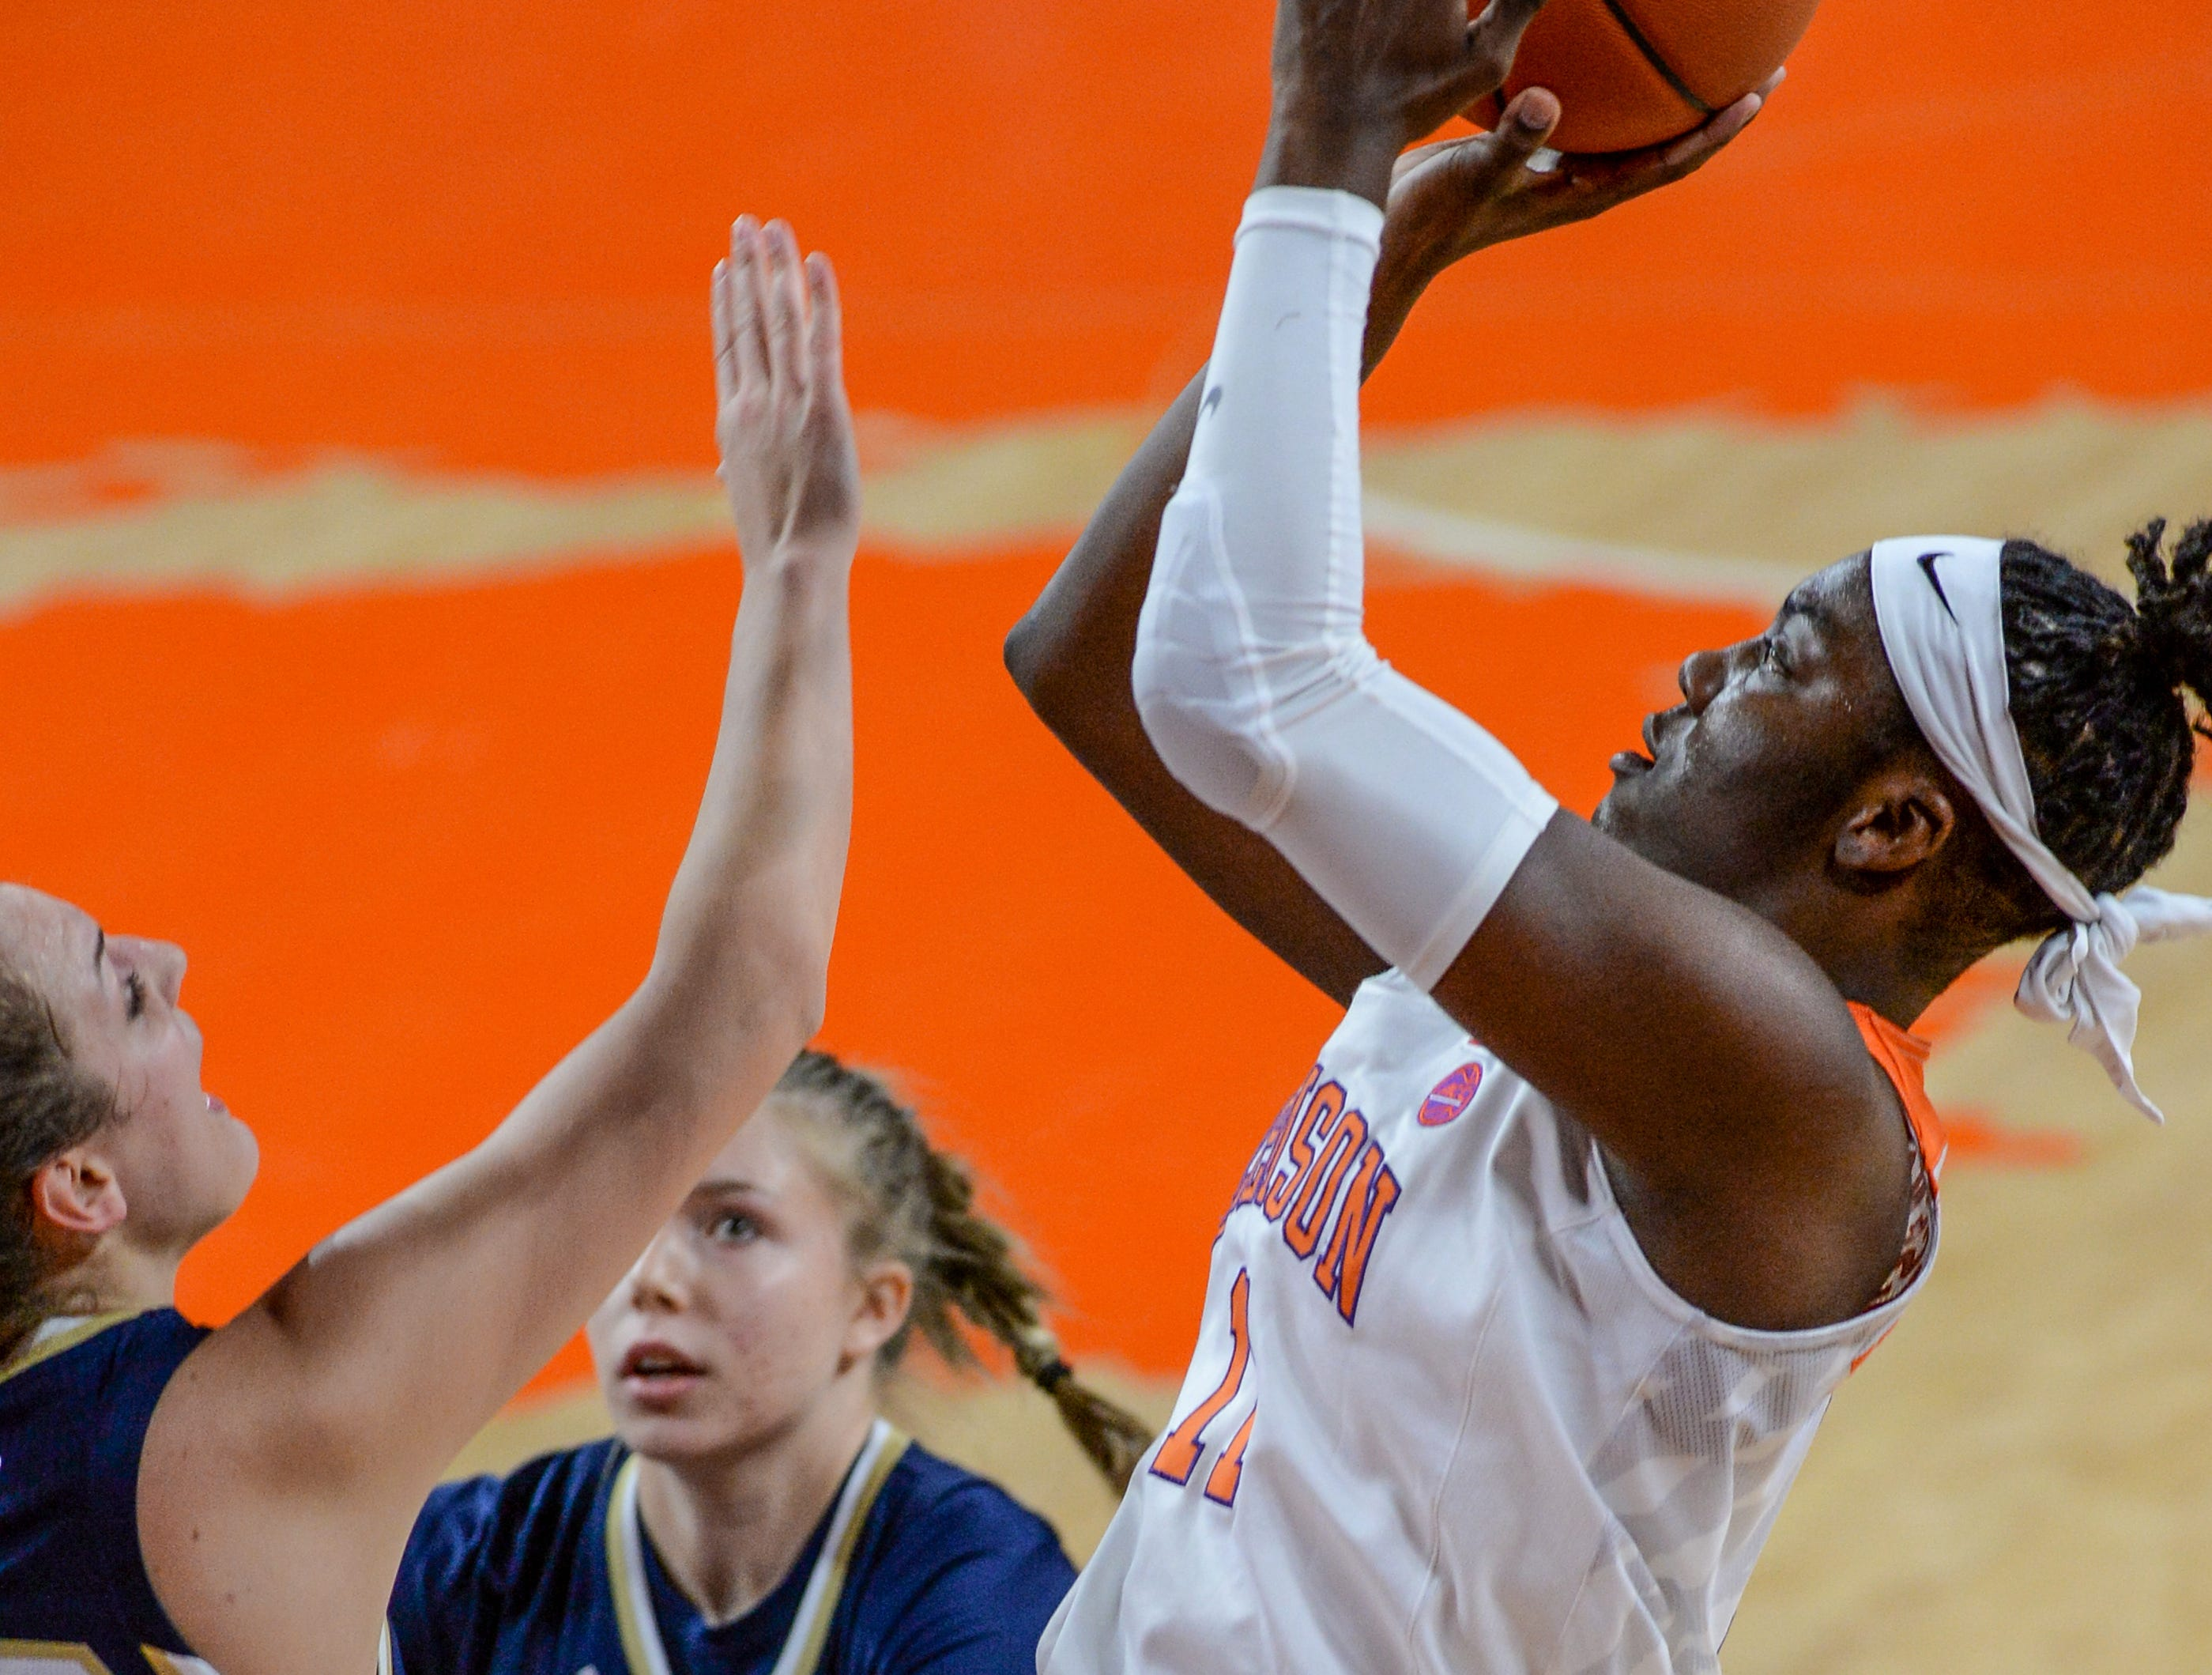 Clemson forward Taylor Hosendove(11) shoots near Georgia Tech guard Frescesca Pan(33) during the first quarter at Littlejohn Coliseum in Clemson Thursday, January 17, 2019.